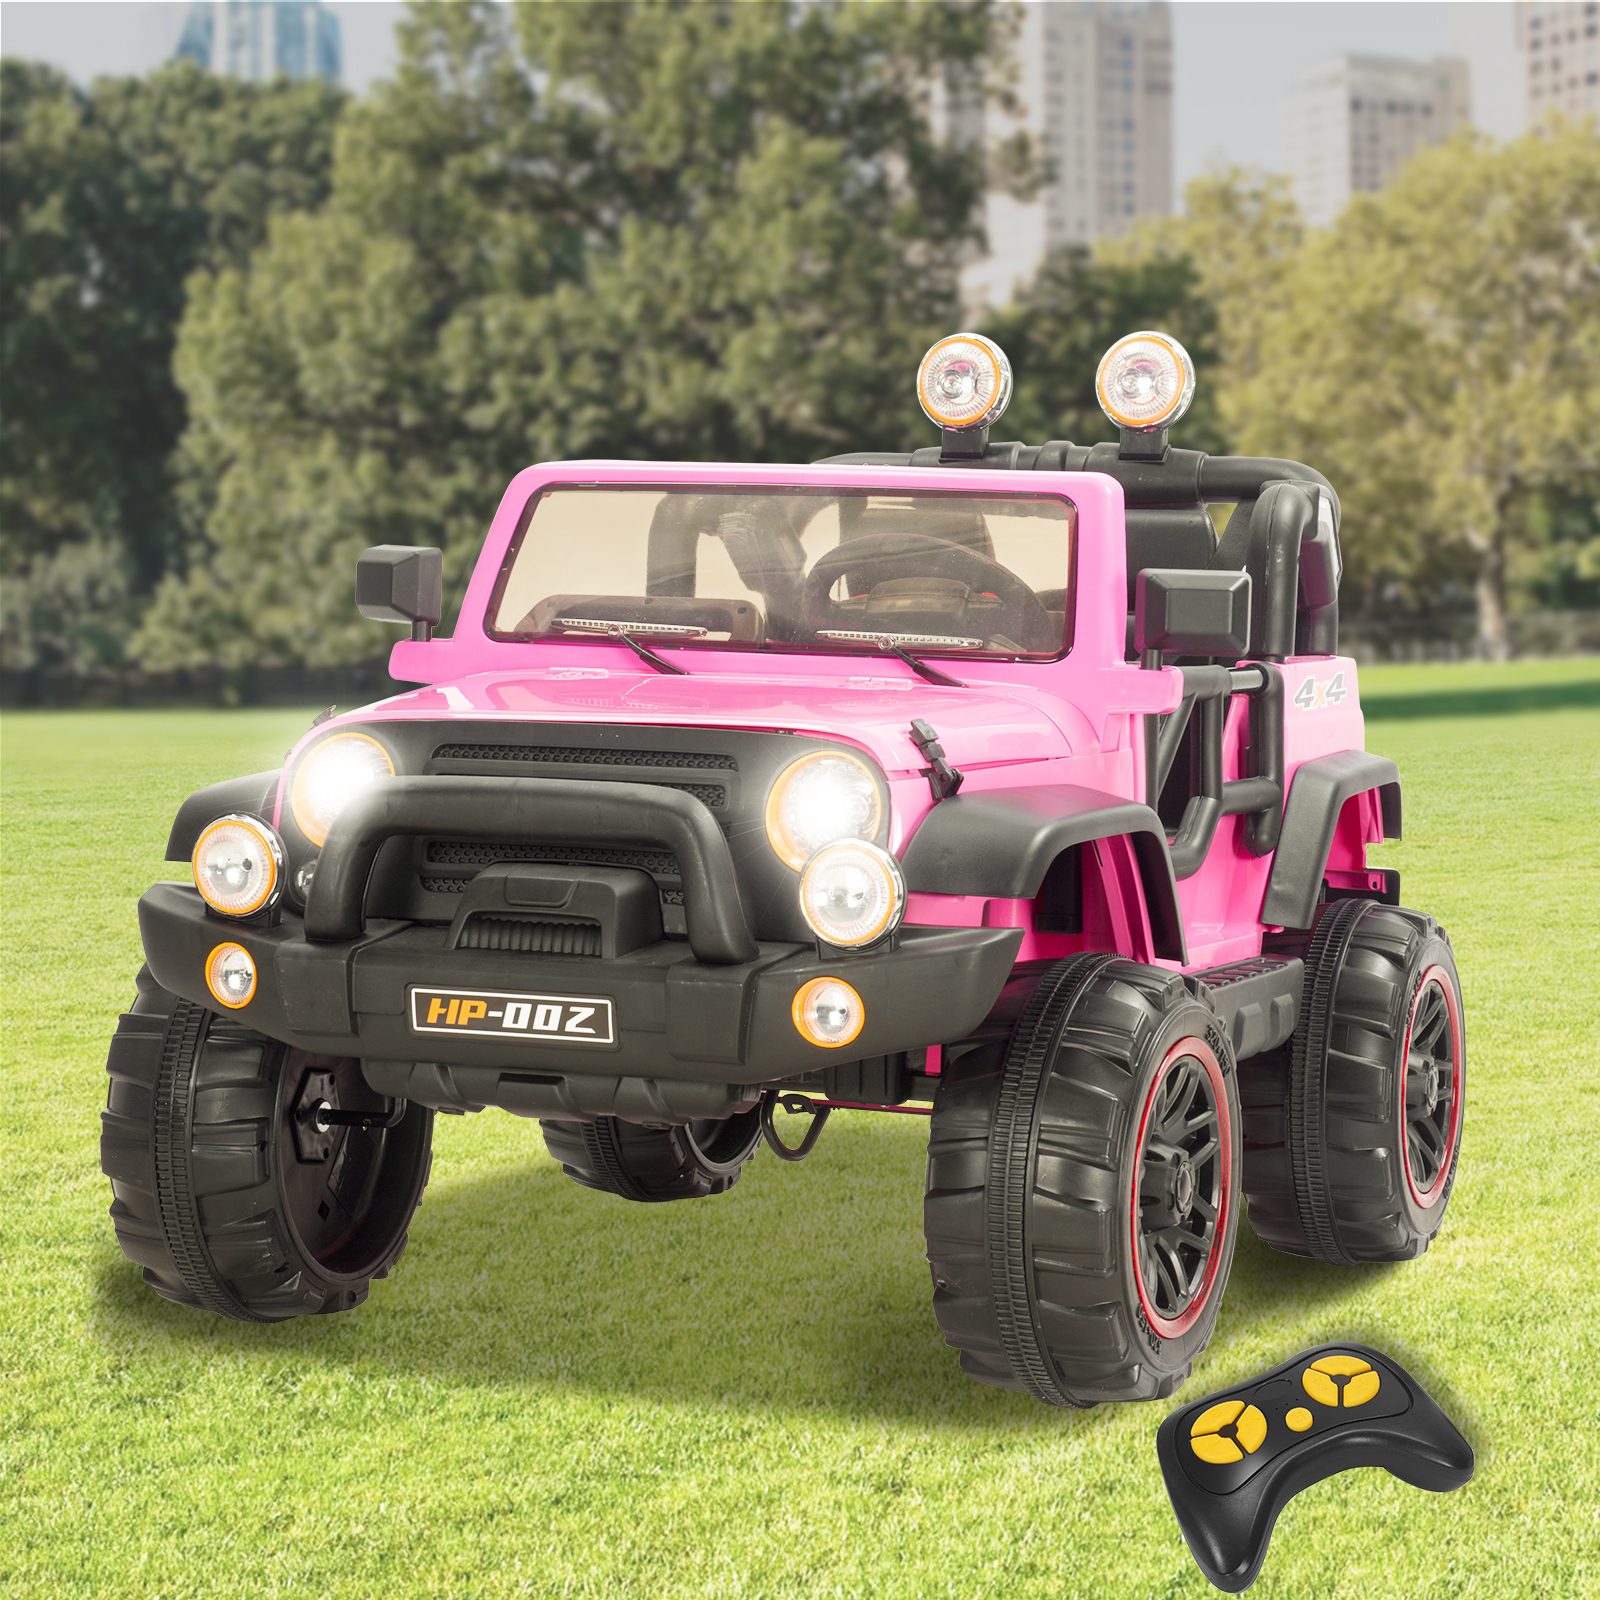 Uenjoy Kids Power Wheels 12V Electric Ride on Cars with Remote Control 2 Speed Pink